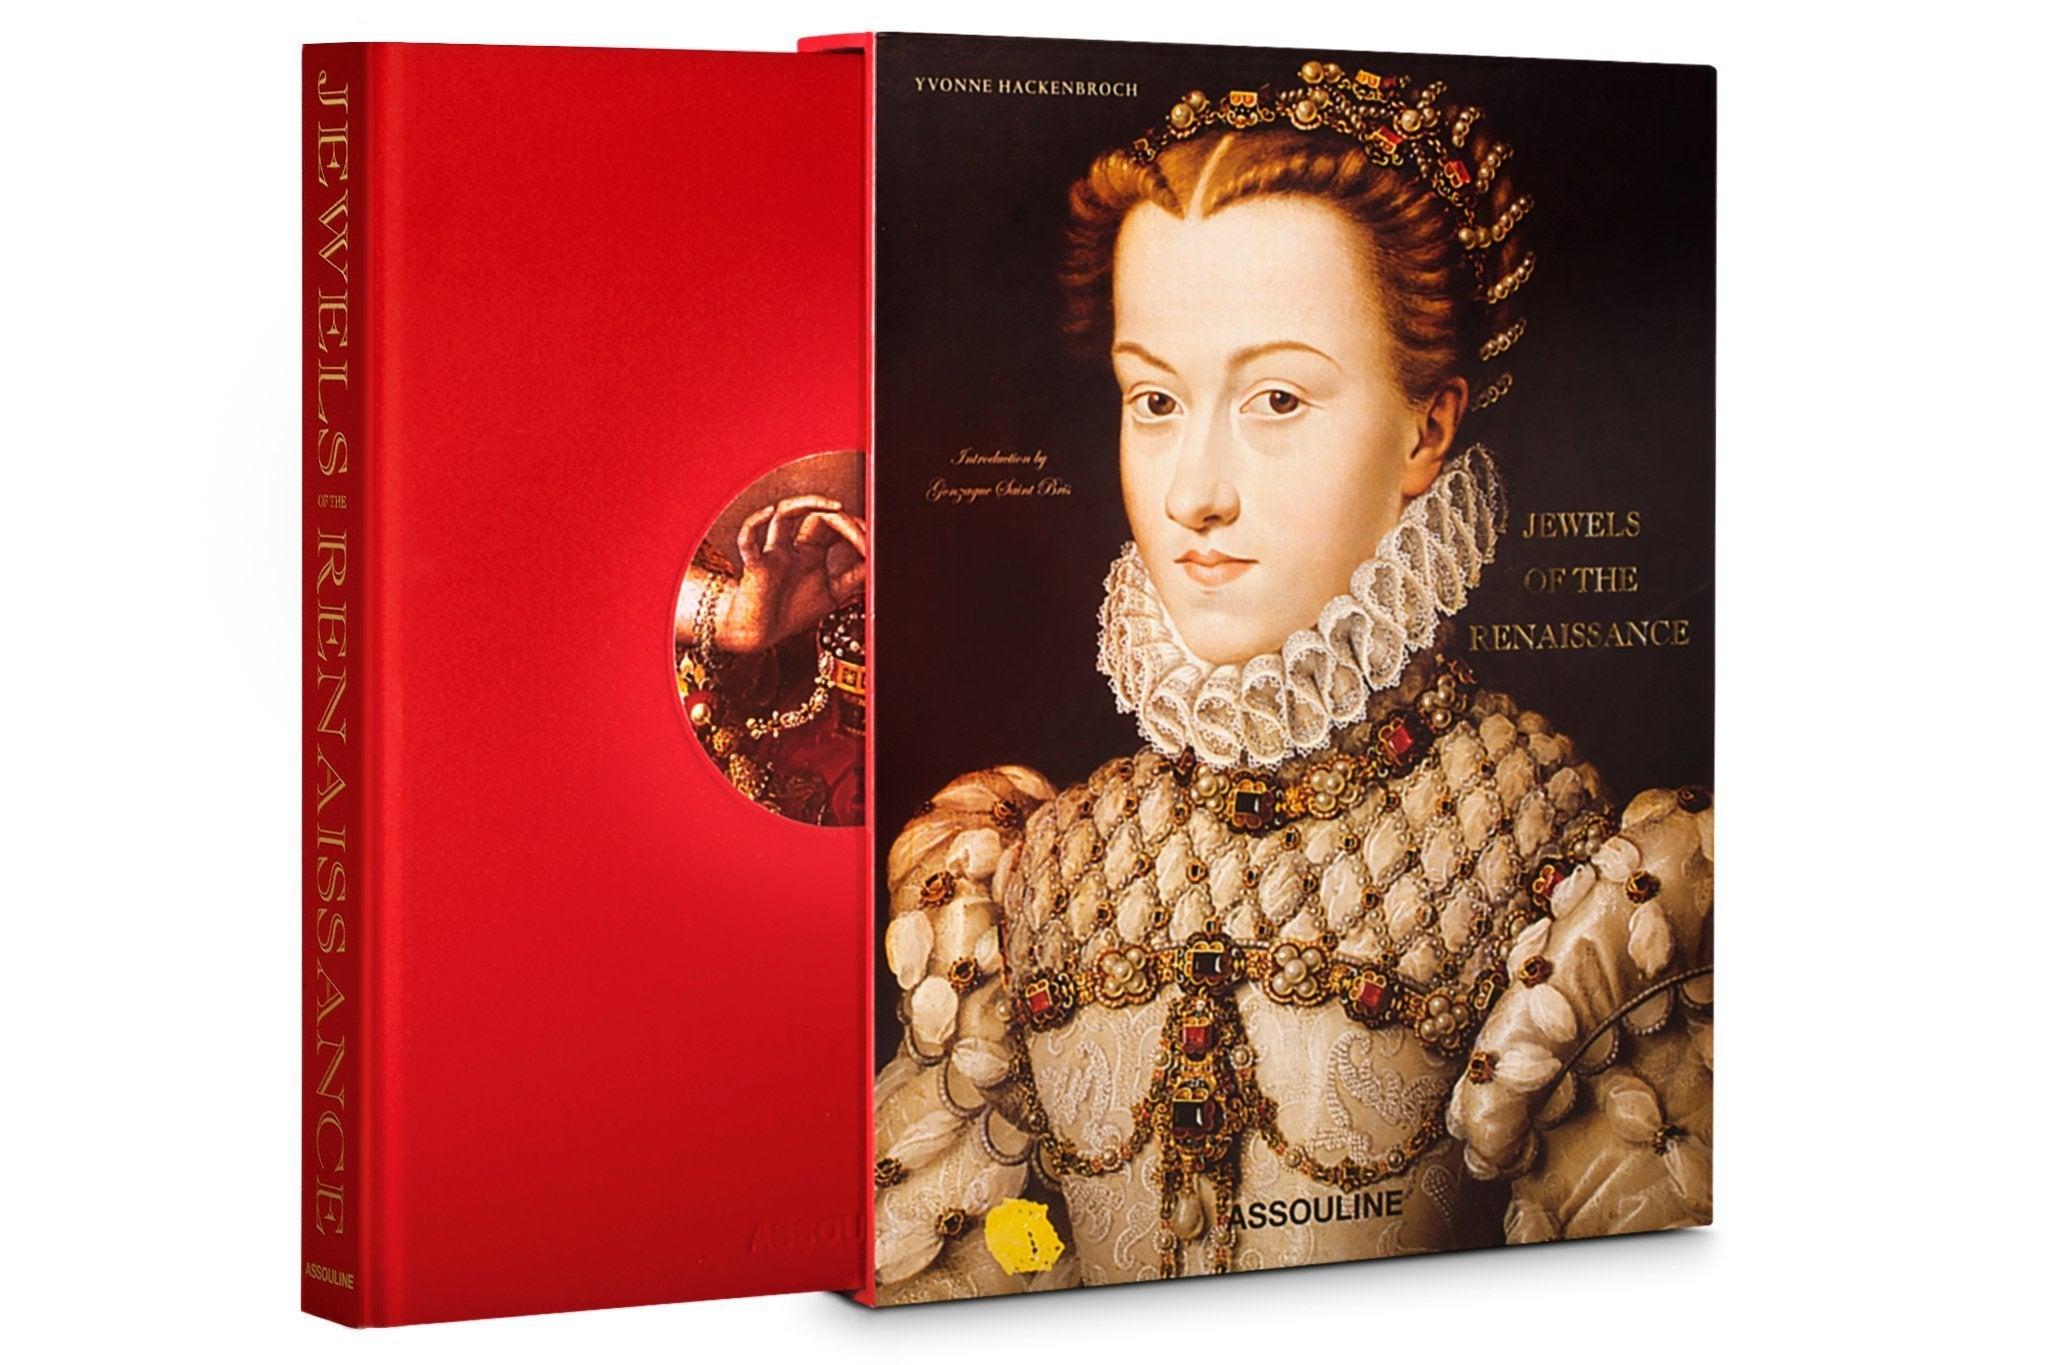 Jewels of the Renaissance - Assouline